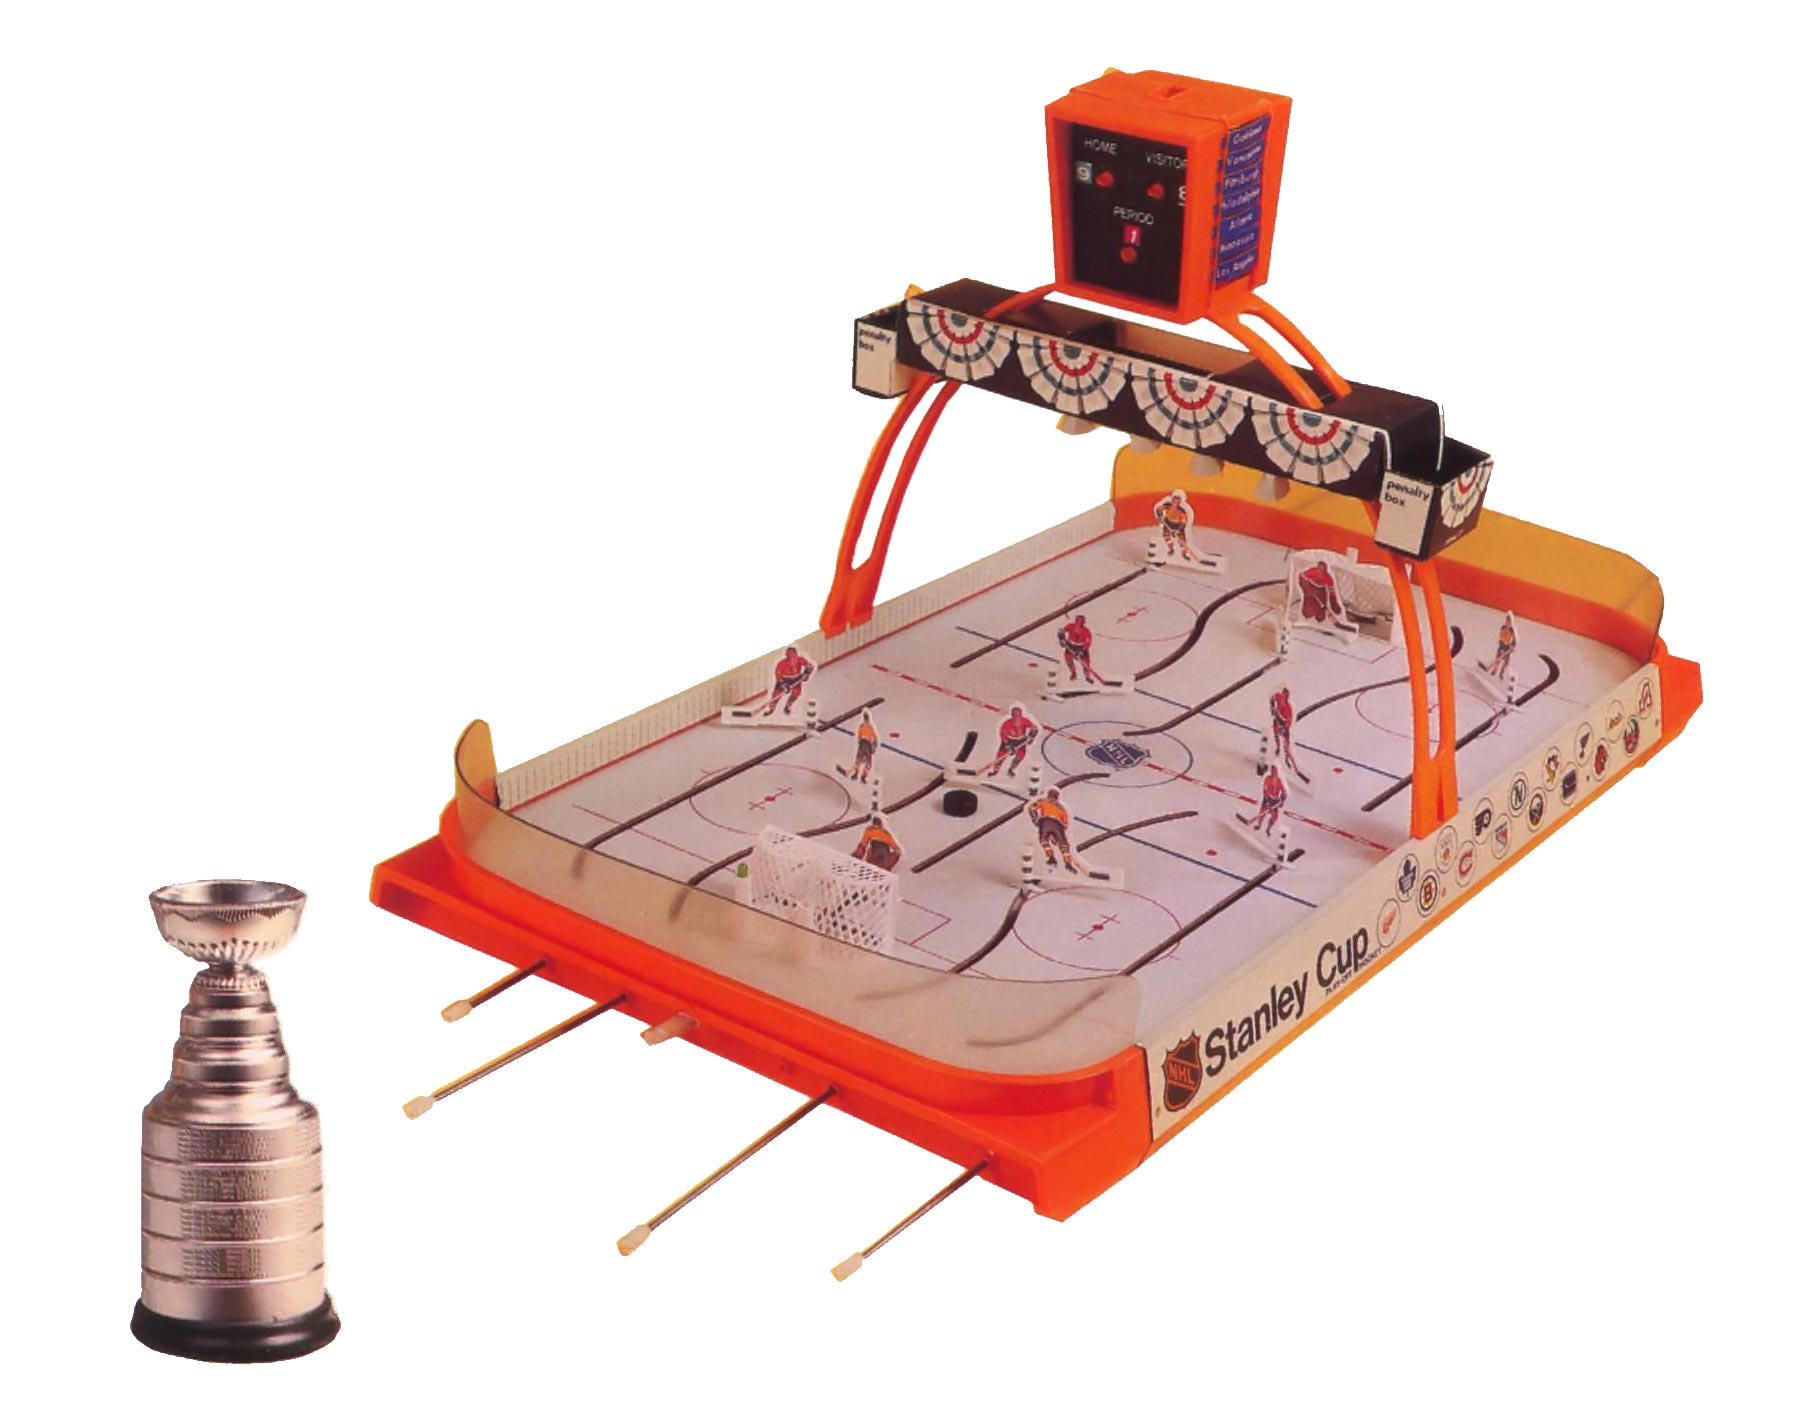 Rod hockey game by Coleco